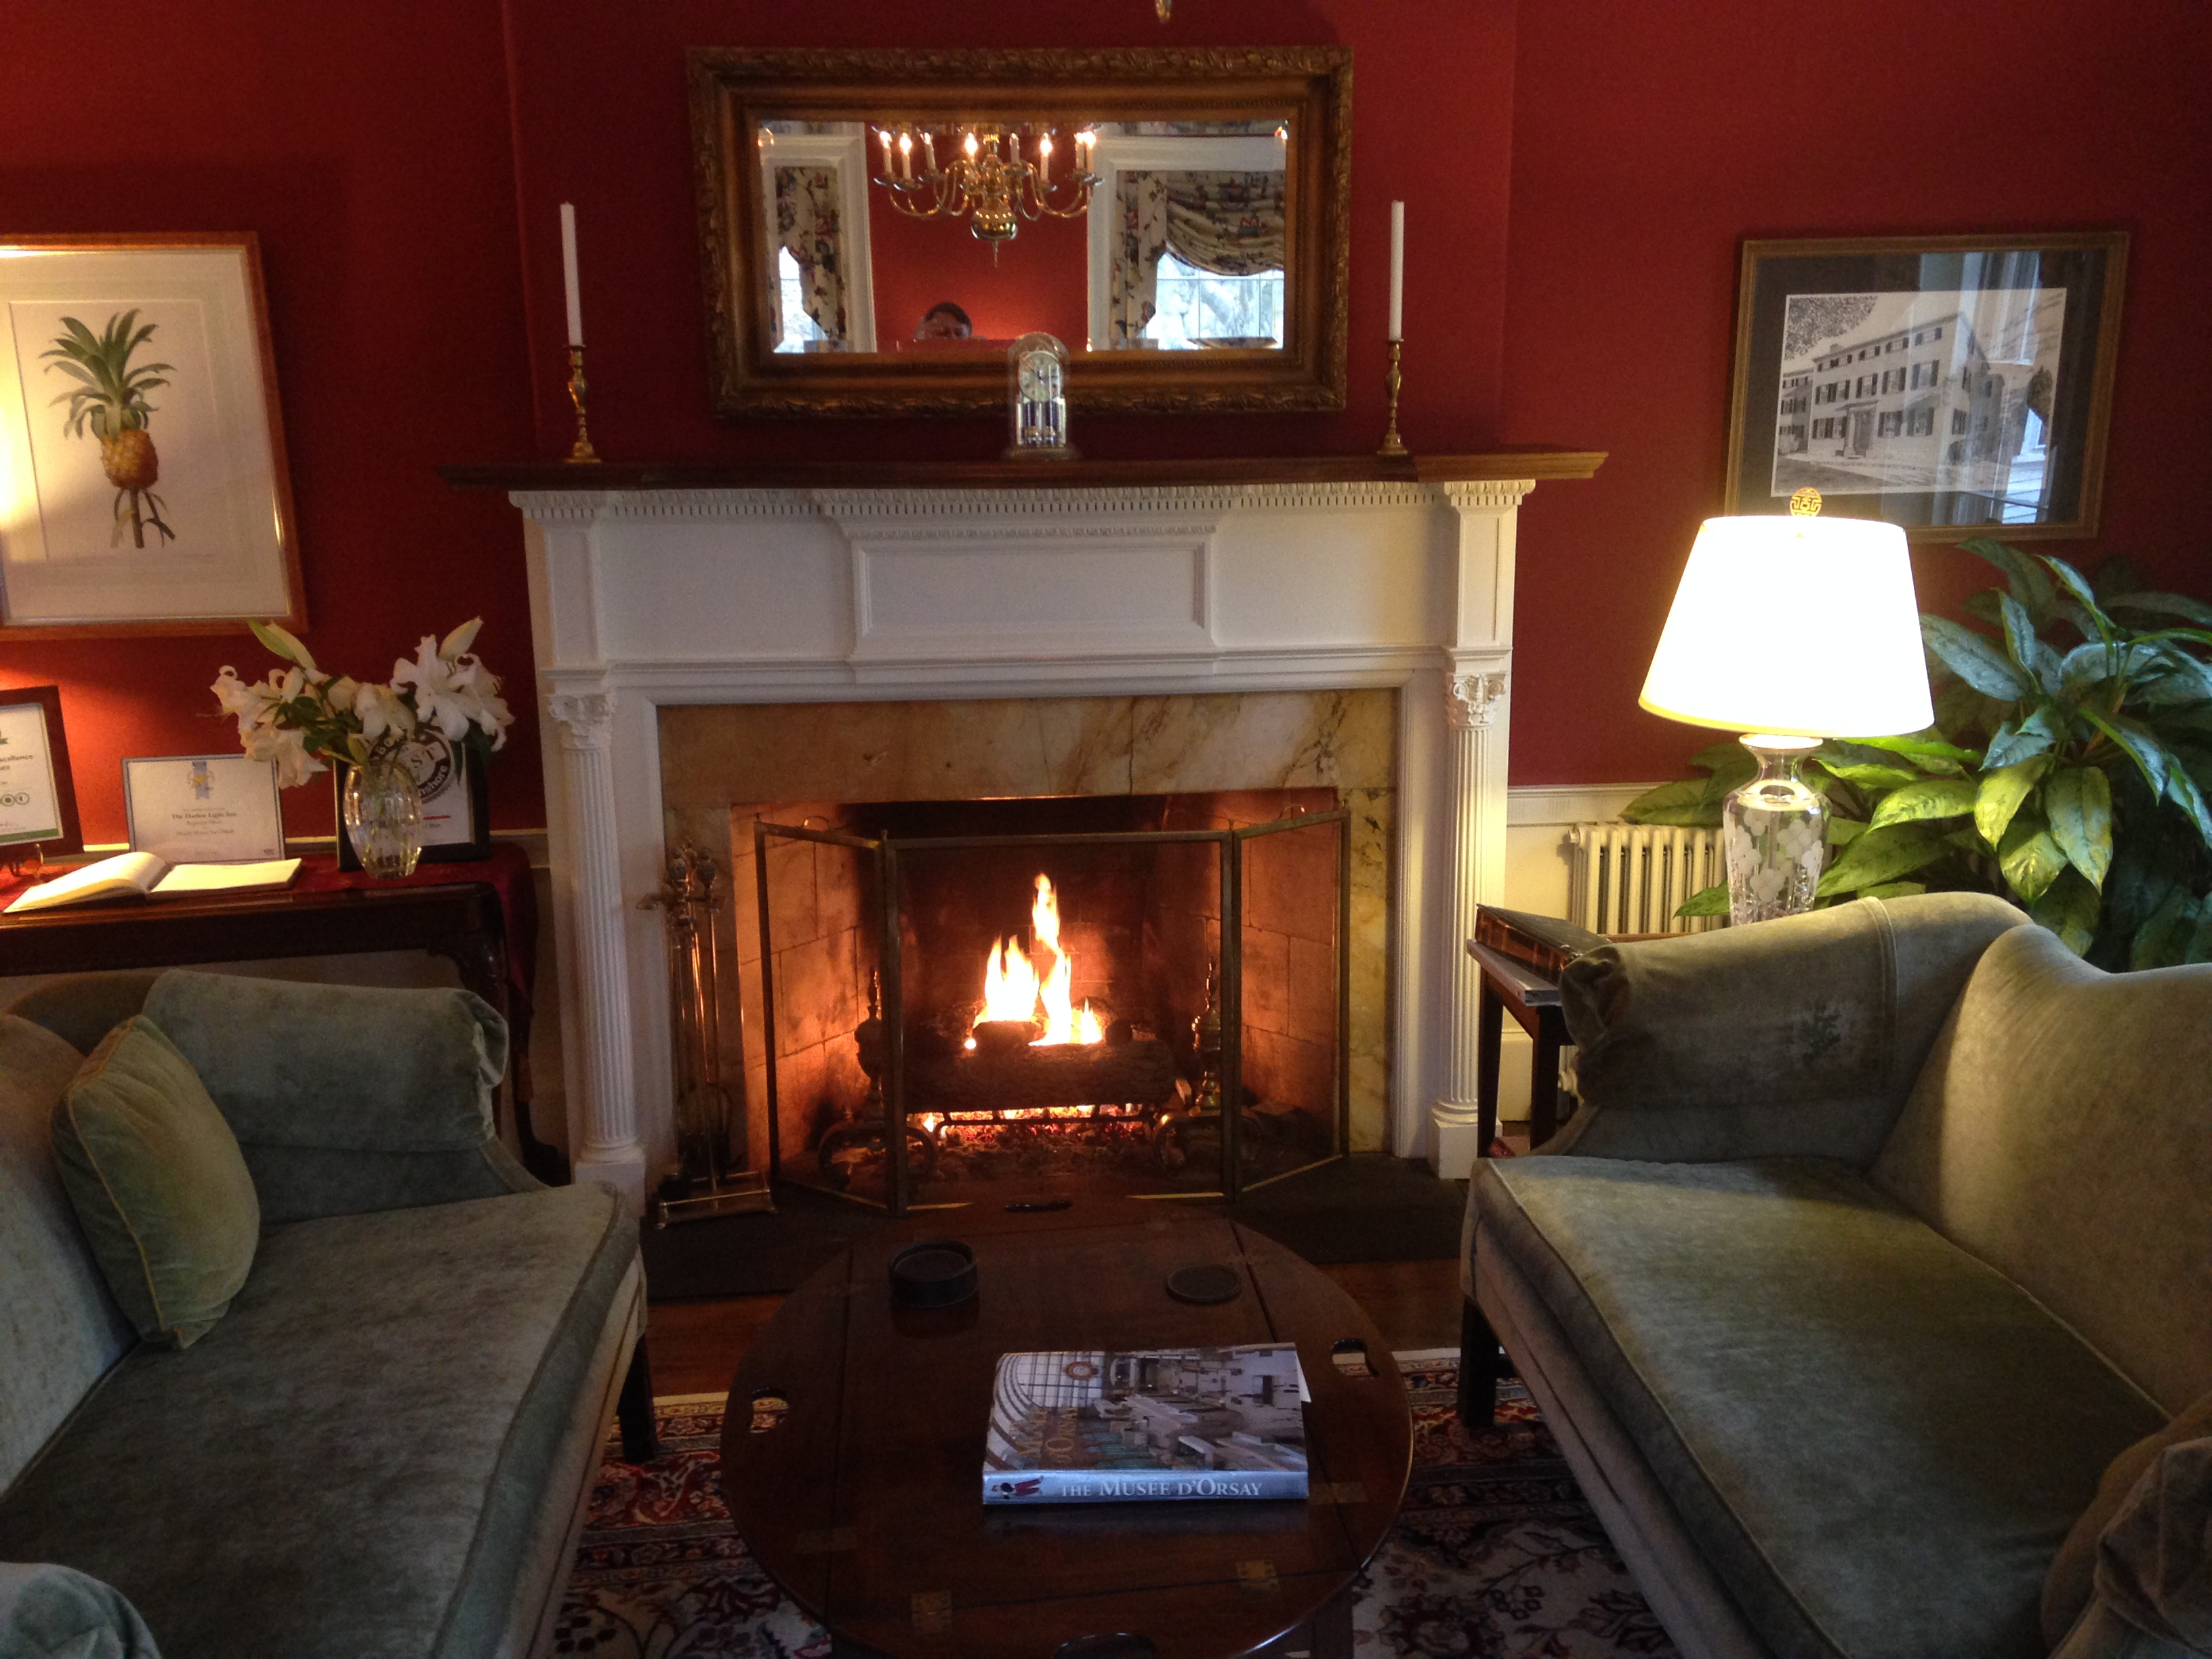 Logging some romance bashfuladventurer the lounge fireplace in the harbor light inn in marblehead mass photo credit teraionfo